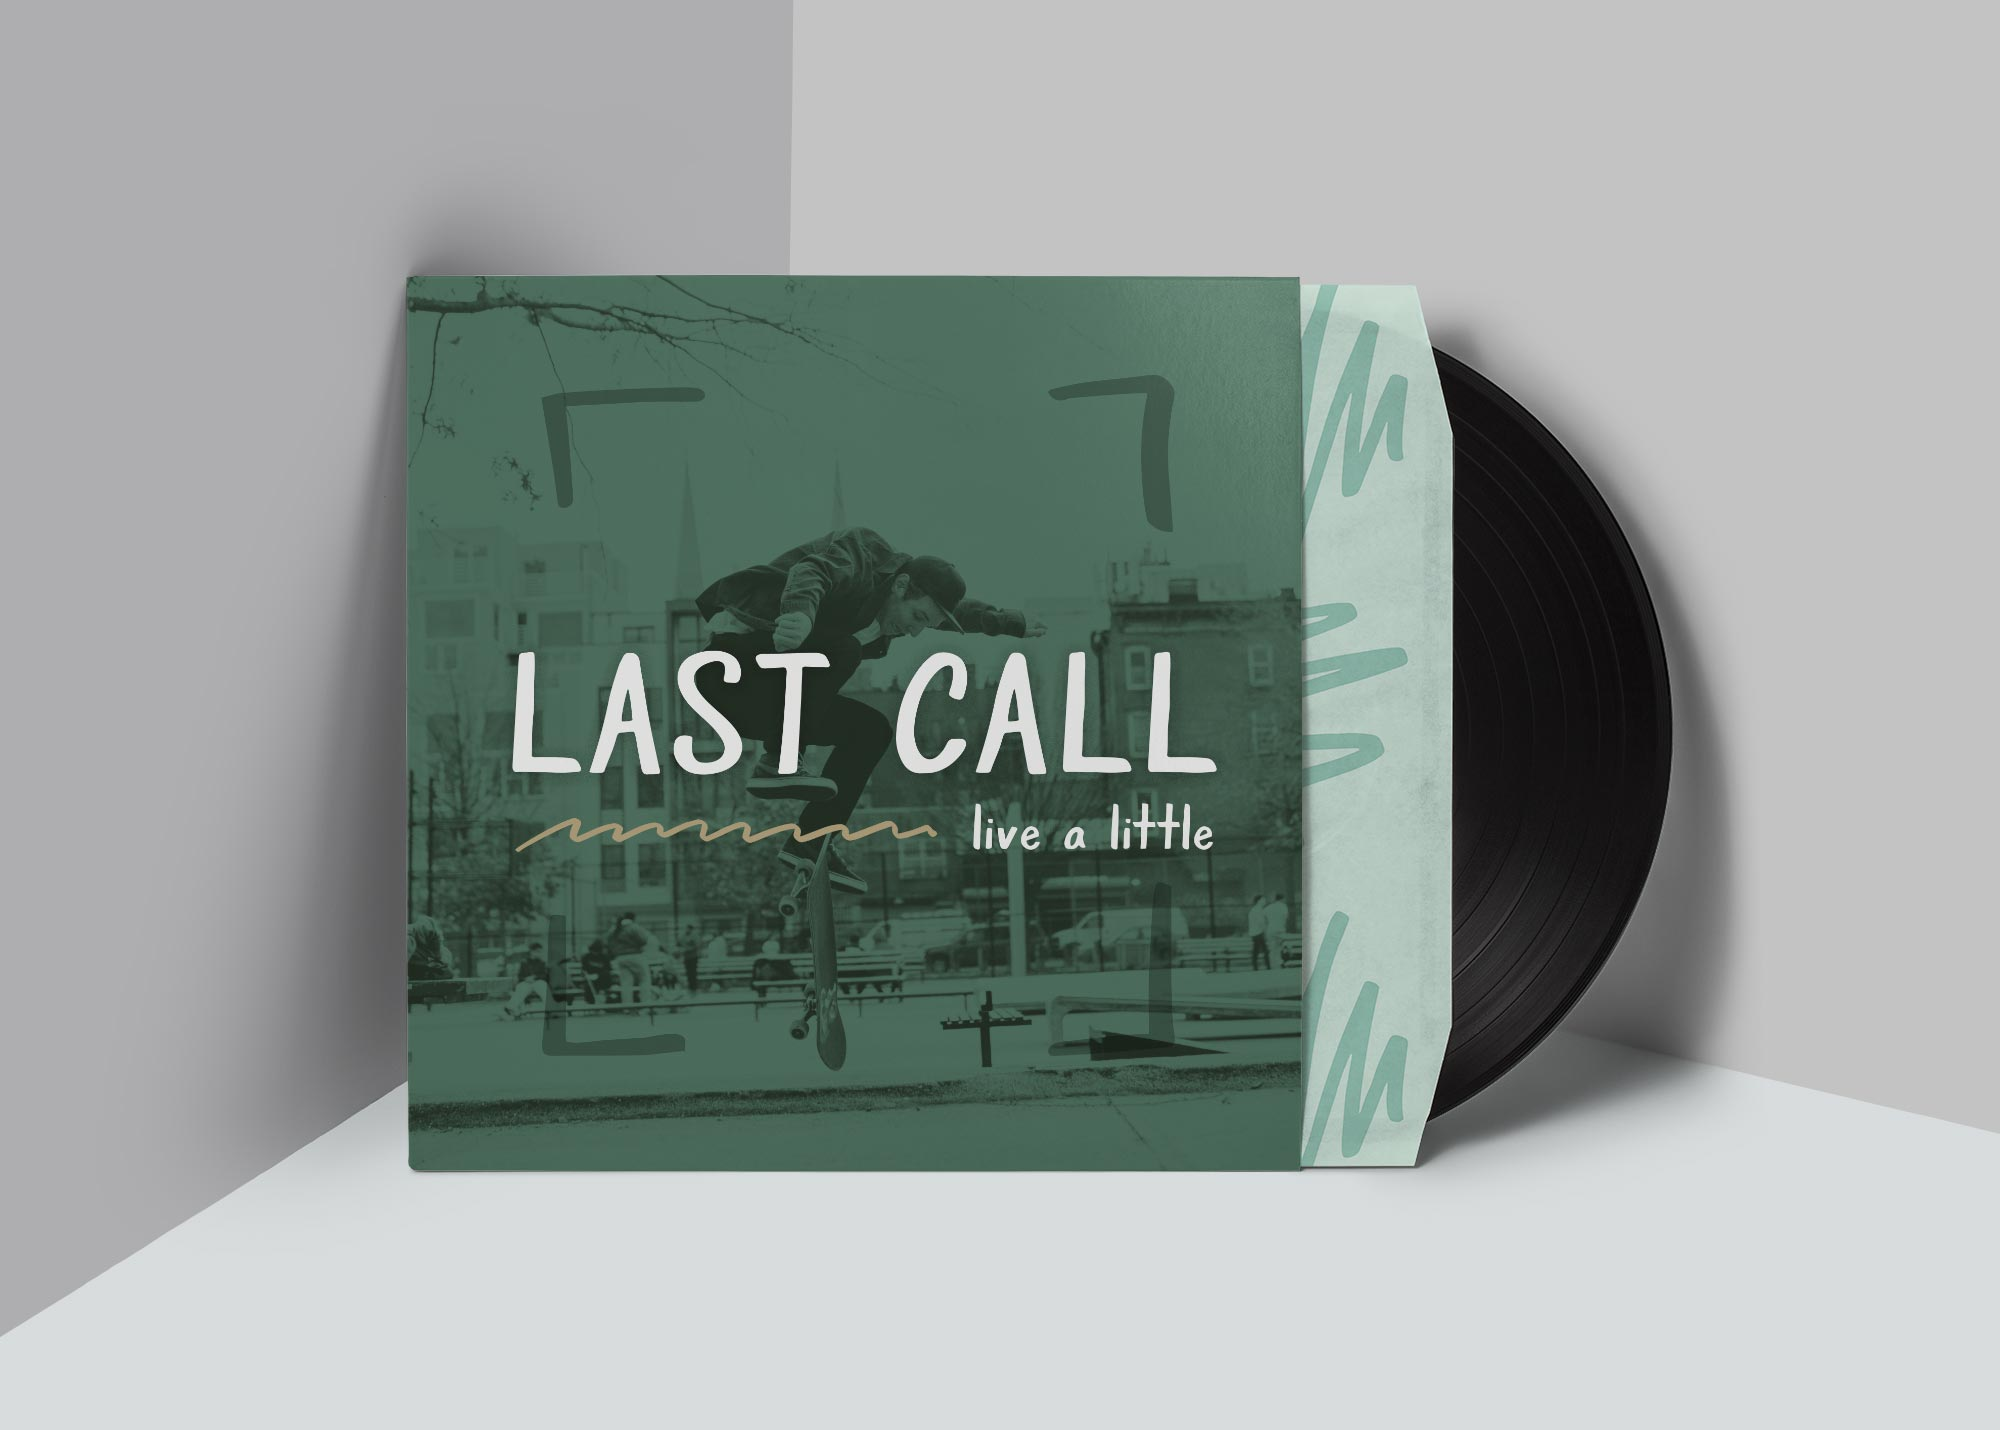 Grayscale font used for a record cover